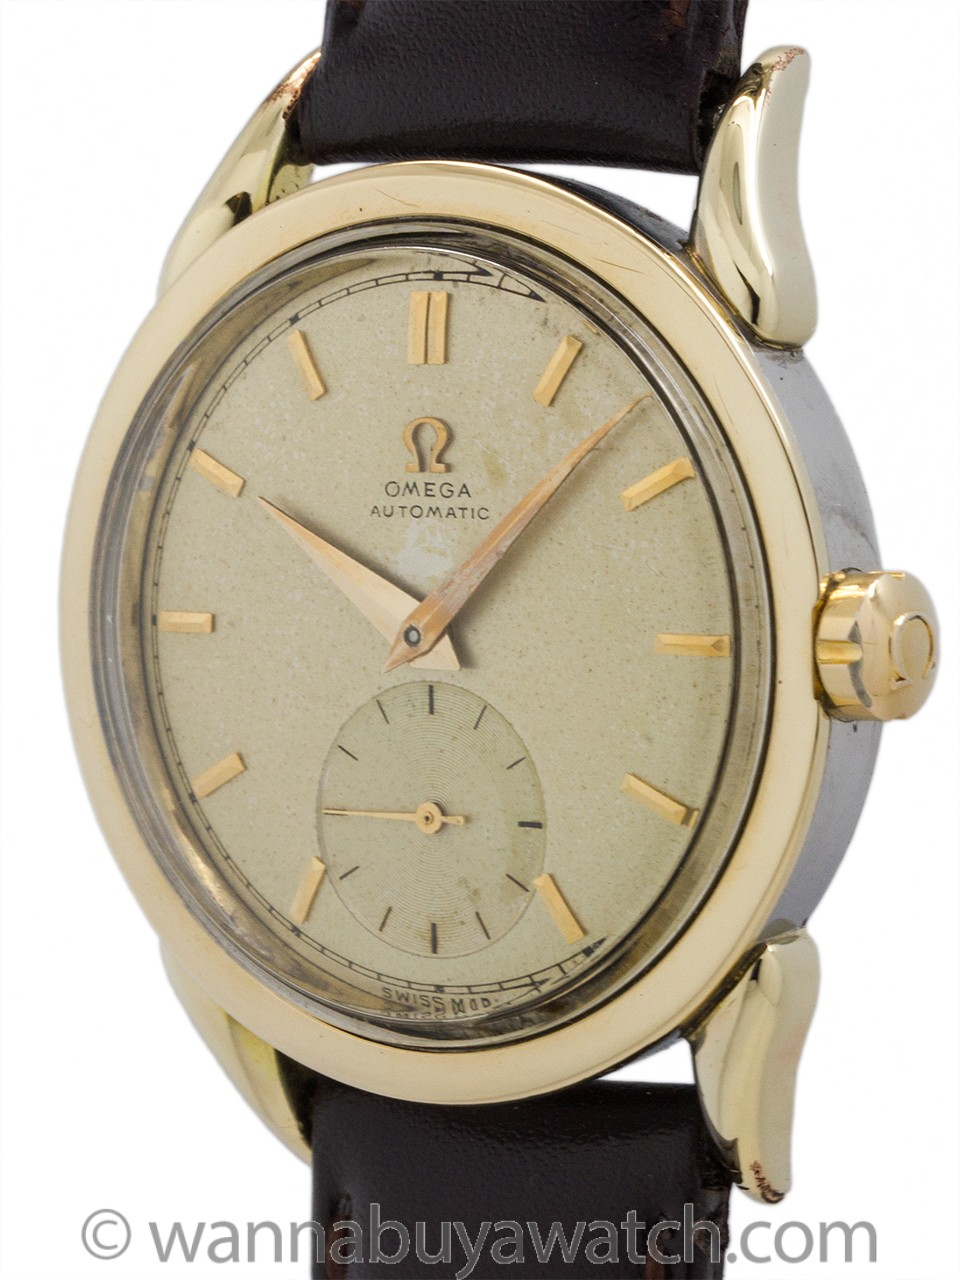 Omega Automatic Gold Shell circa 1950